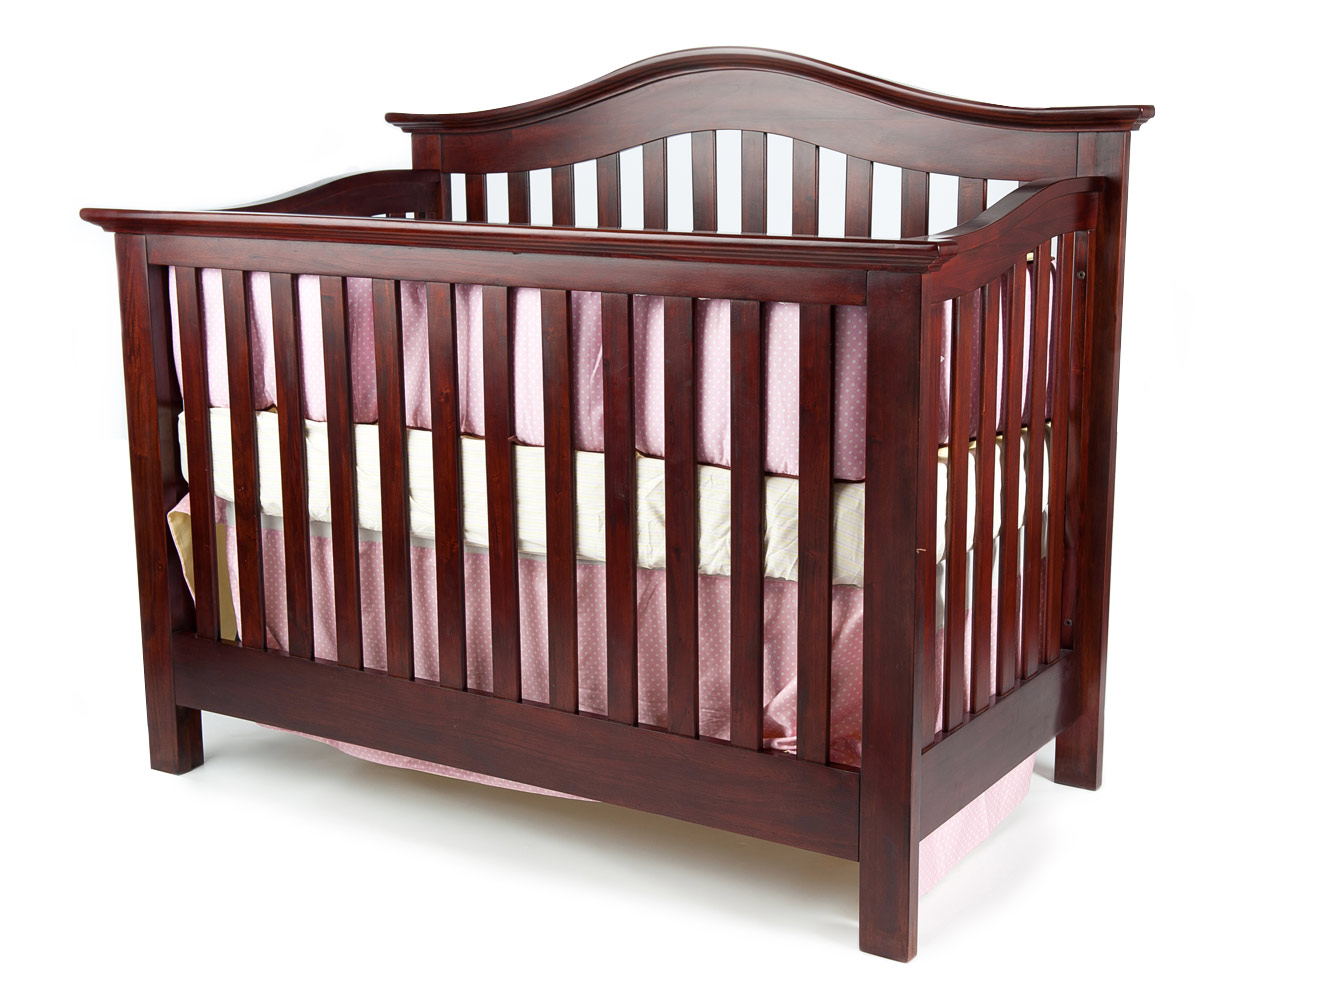 Coventry Lifetime Convertible Crib in Espresso by Munire crib